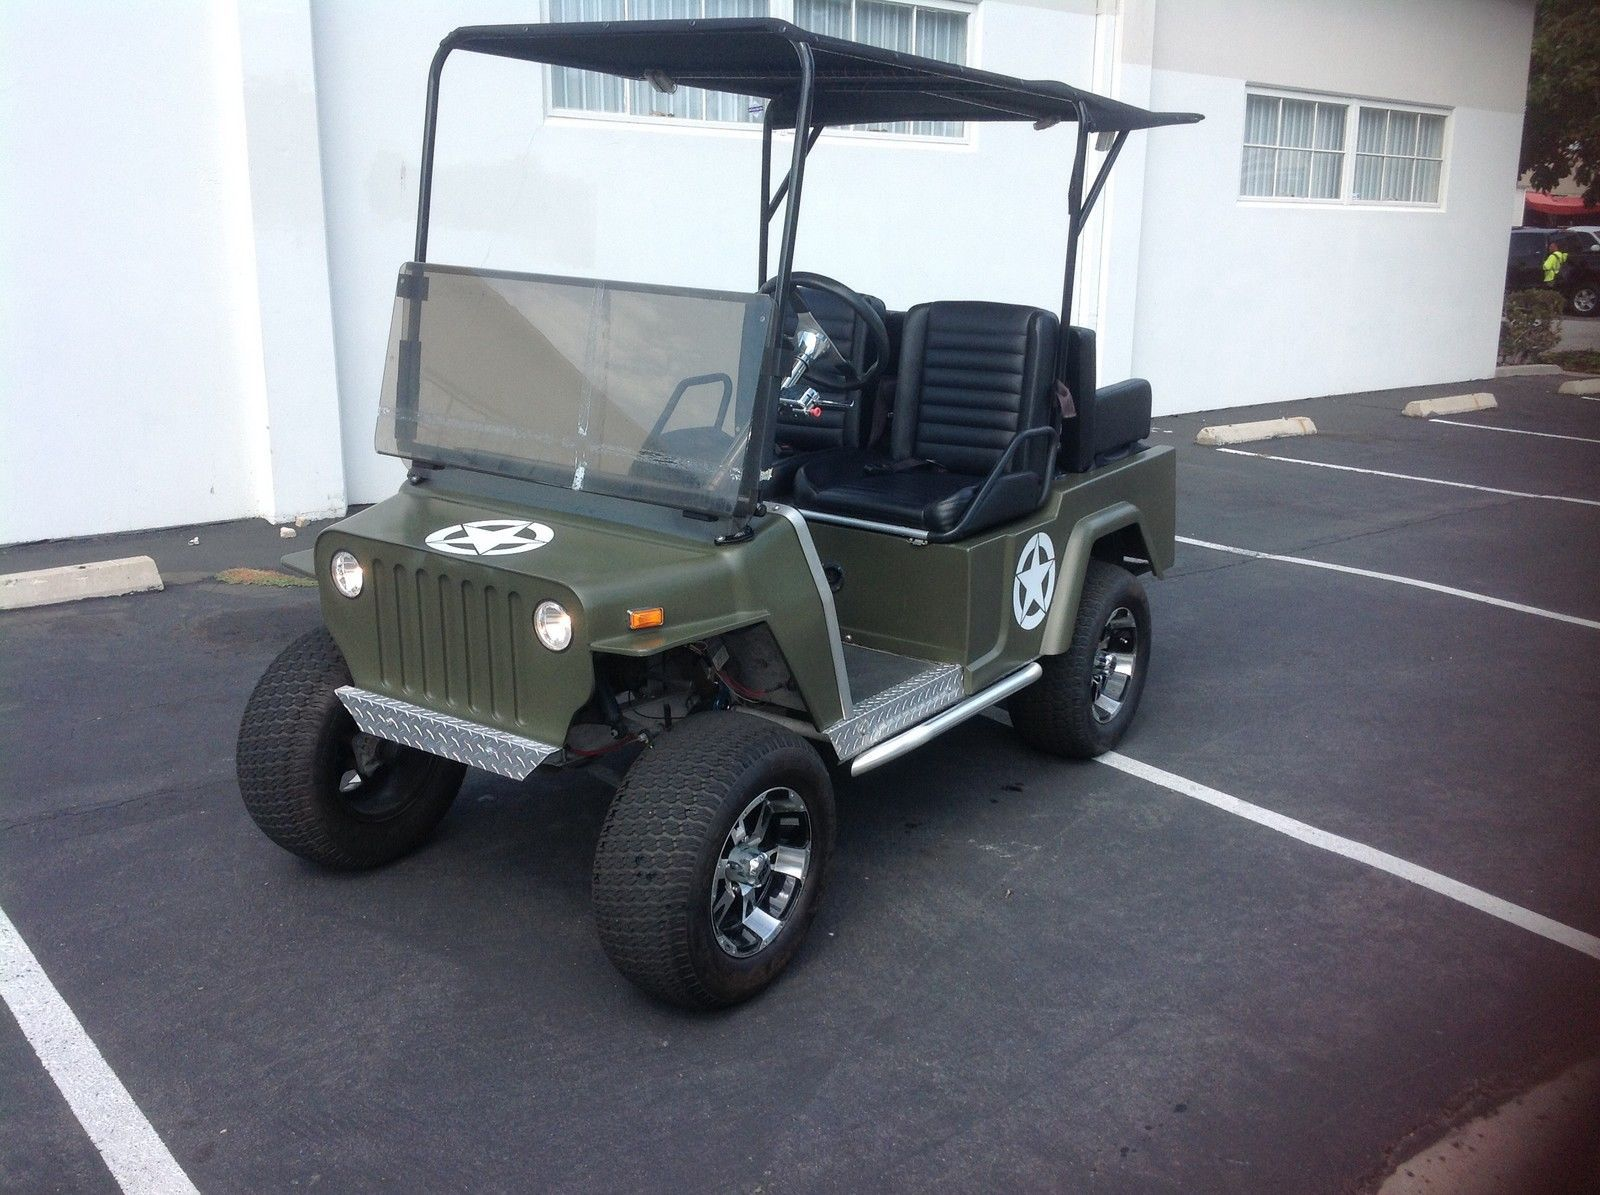 club car golf cart willys jeep custom 48v 48 volt green army style 12alloy